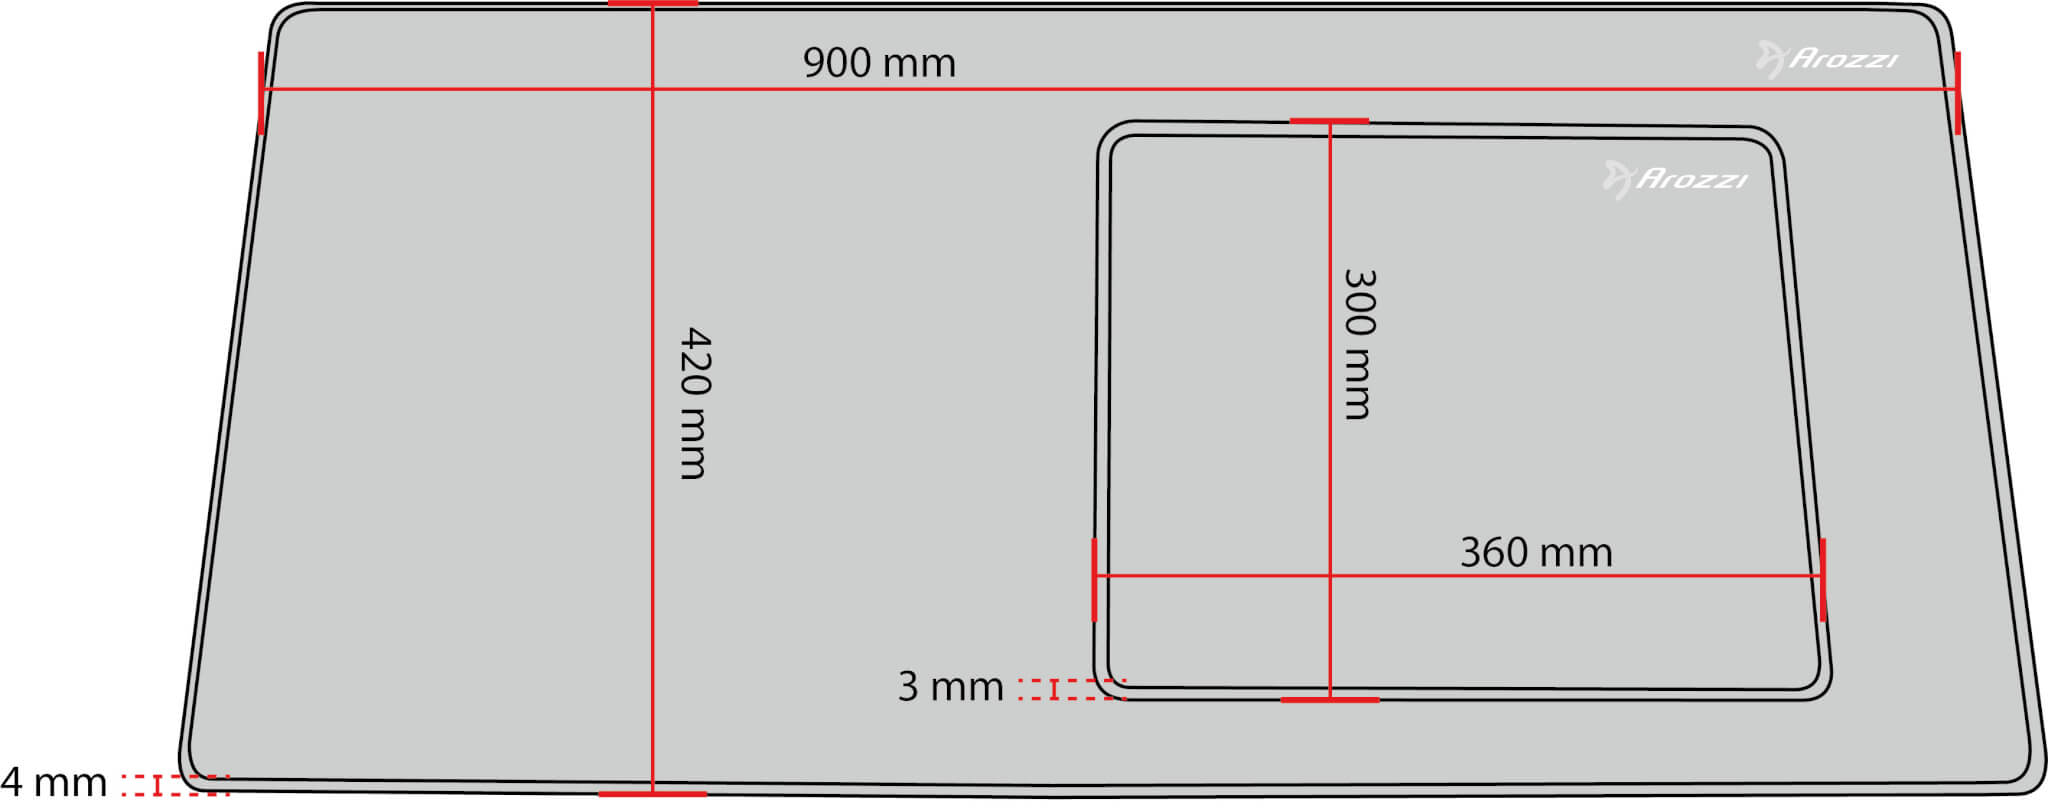 Zona Mouse Pad Measurement Sketch